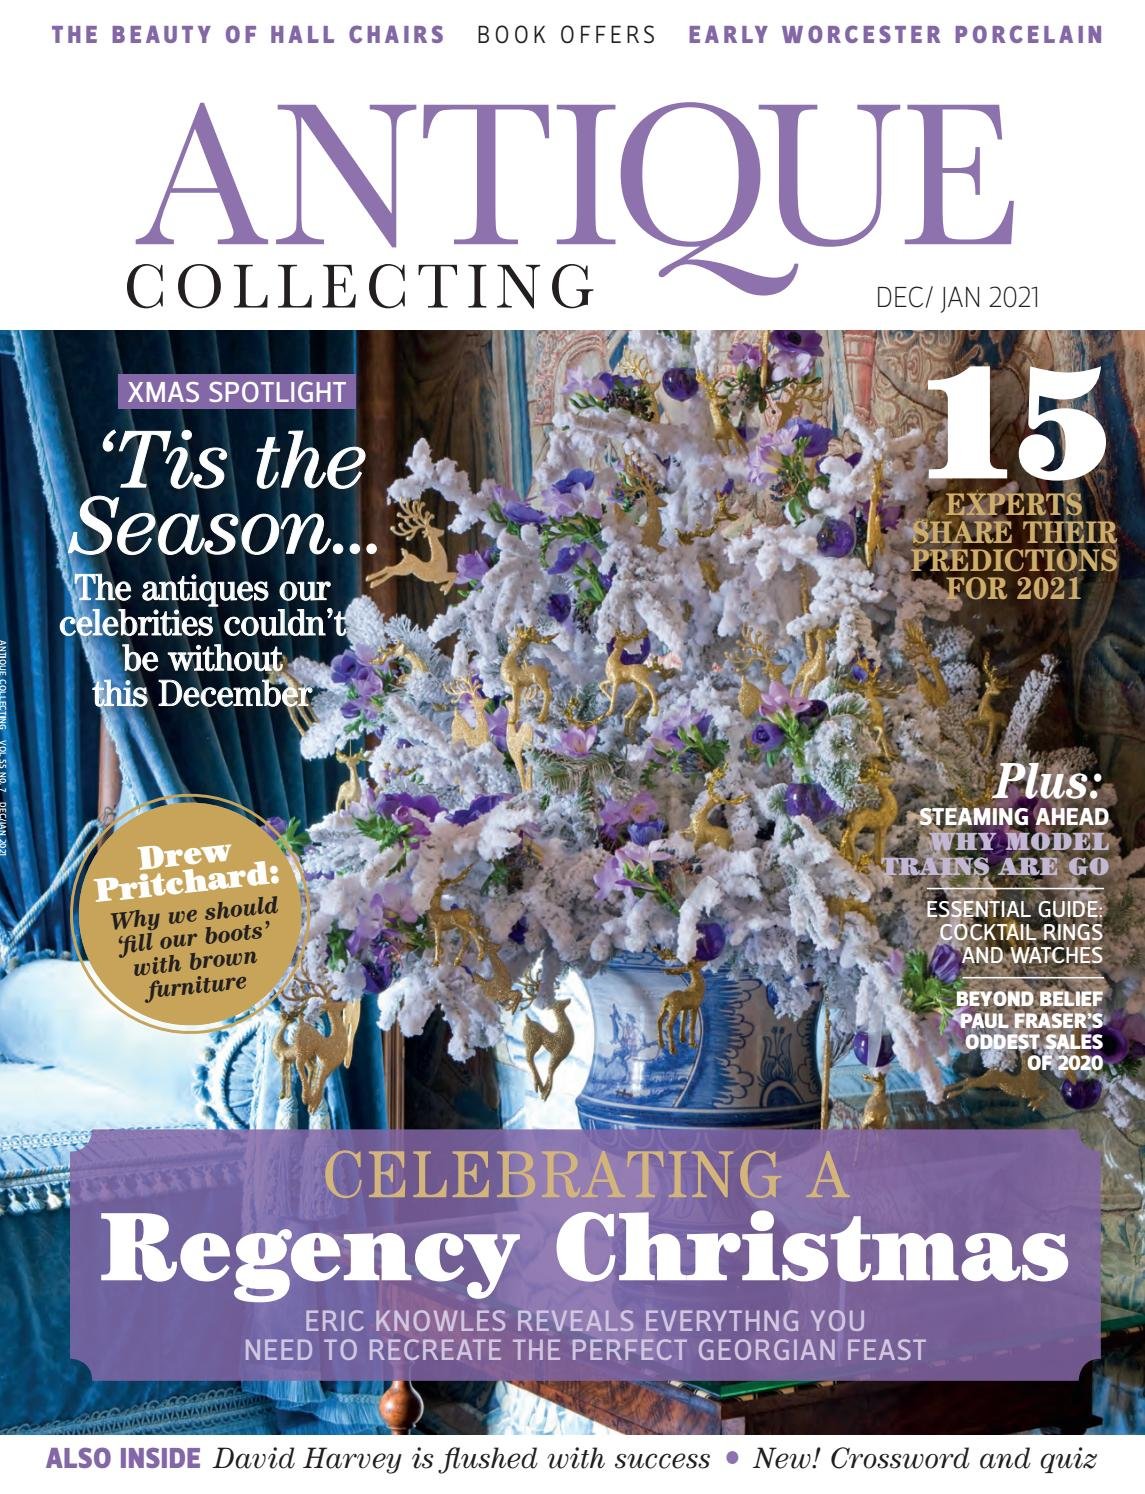 Antique Collecting Magazine Dec Jan Issue 2021 By Acc Art Books Issuu